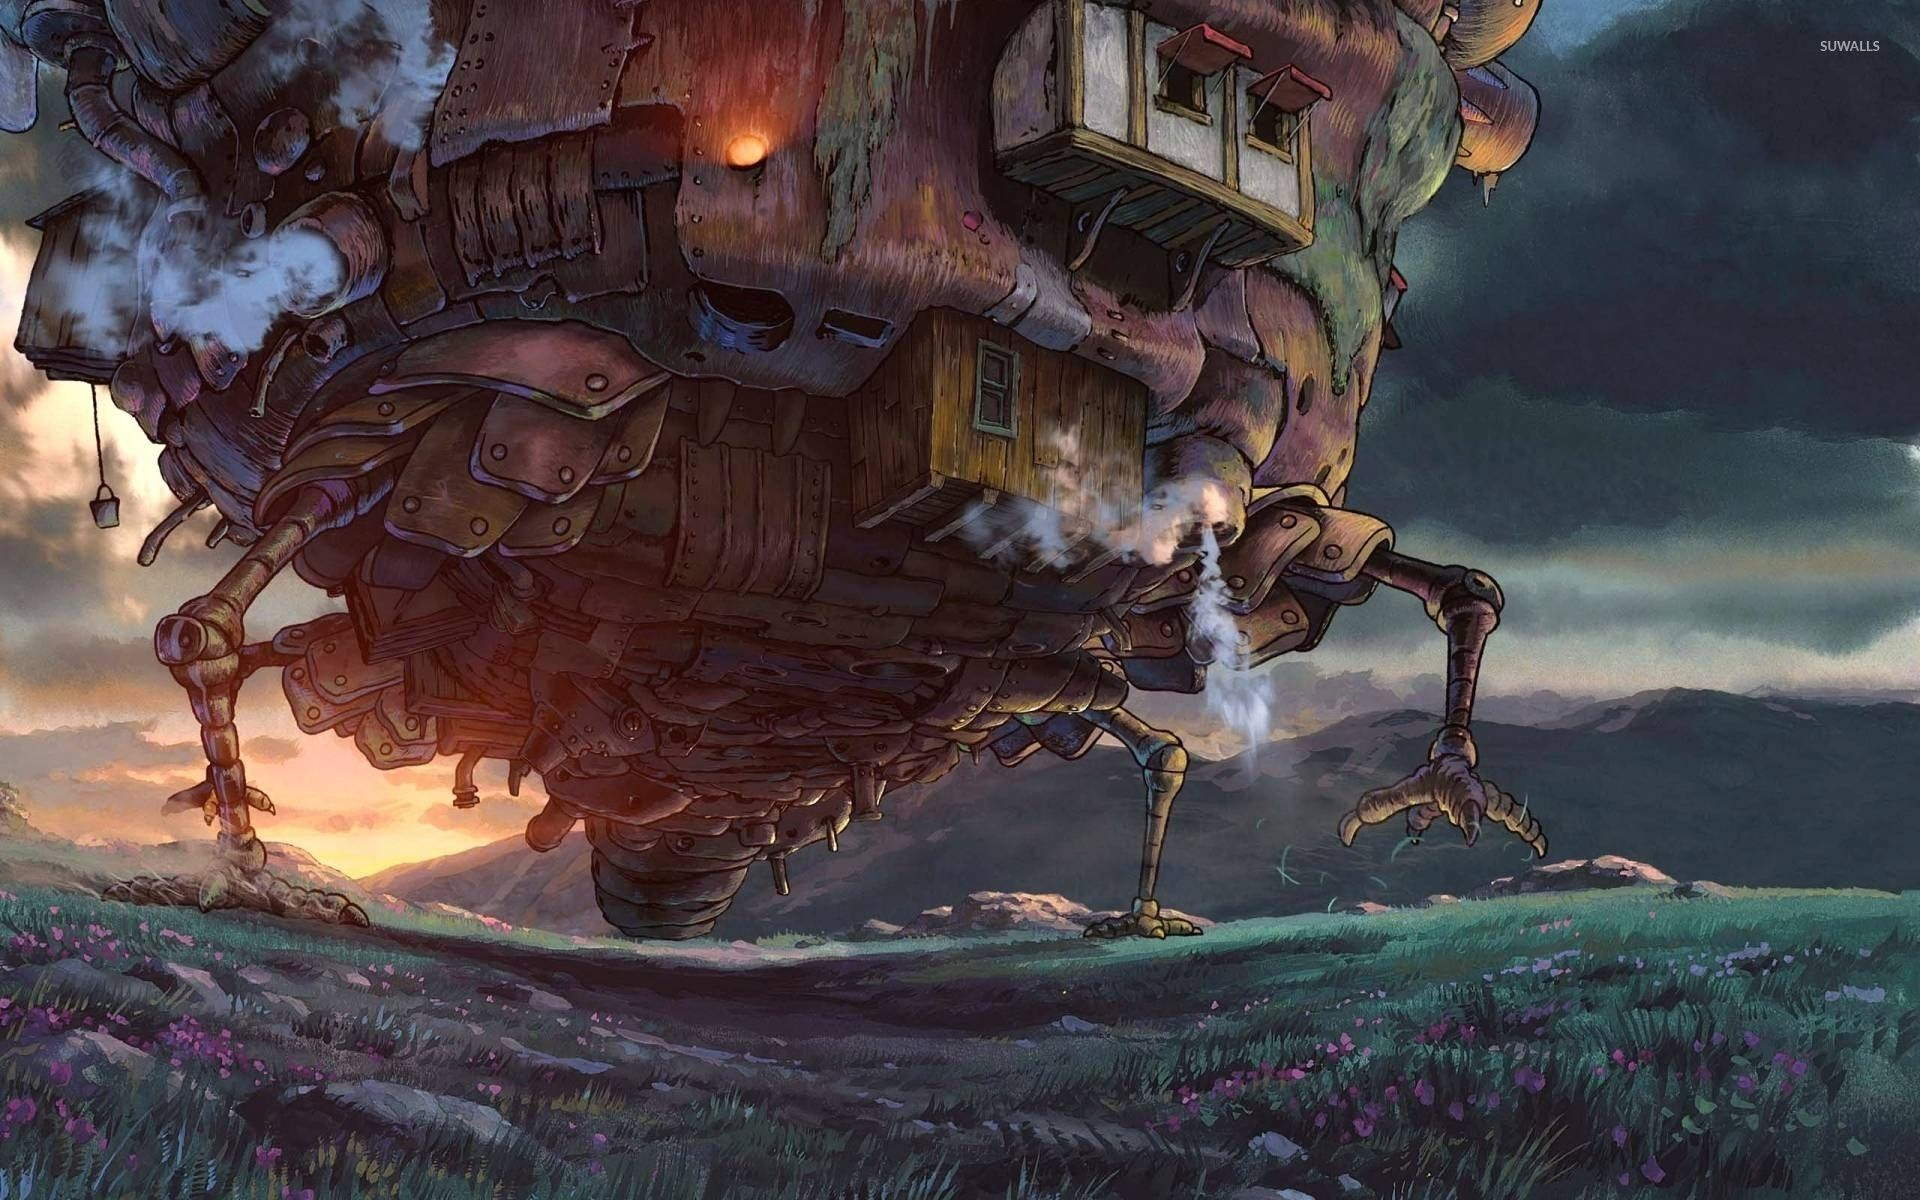 Suggestions Online Images of Howls Moving Castle